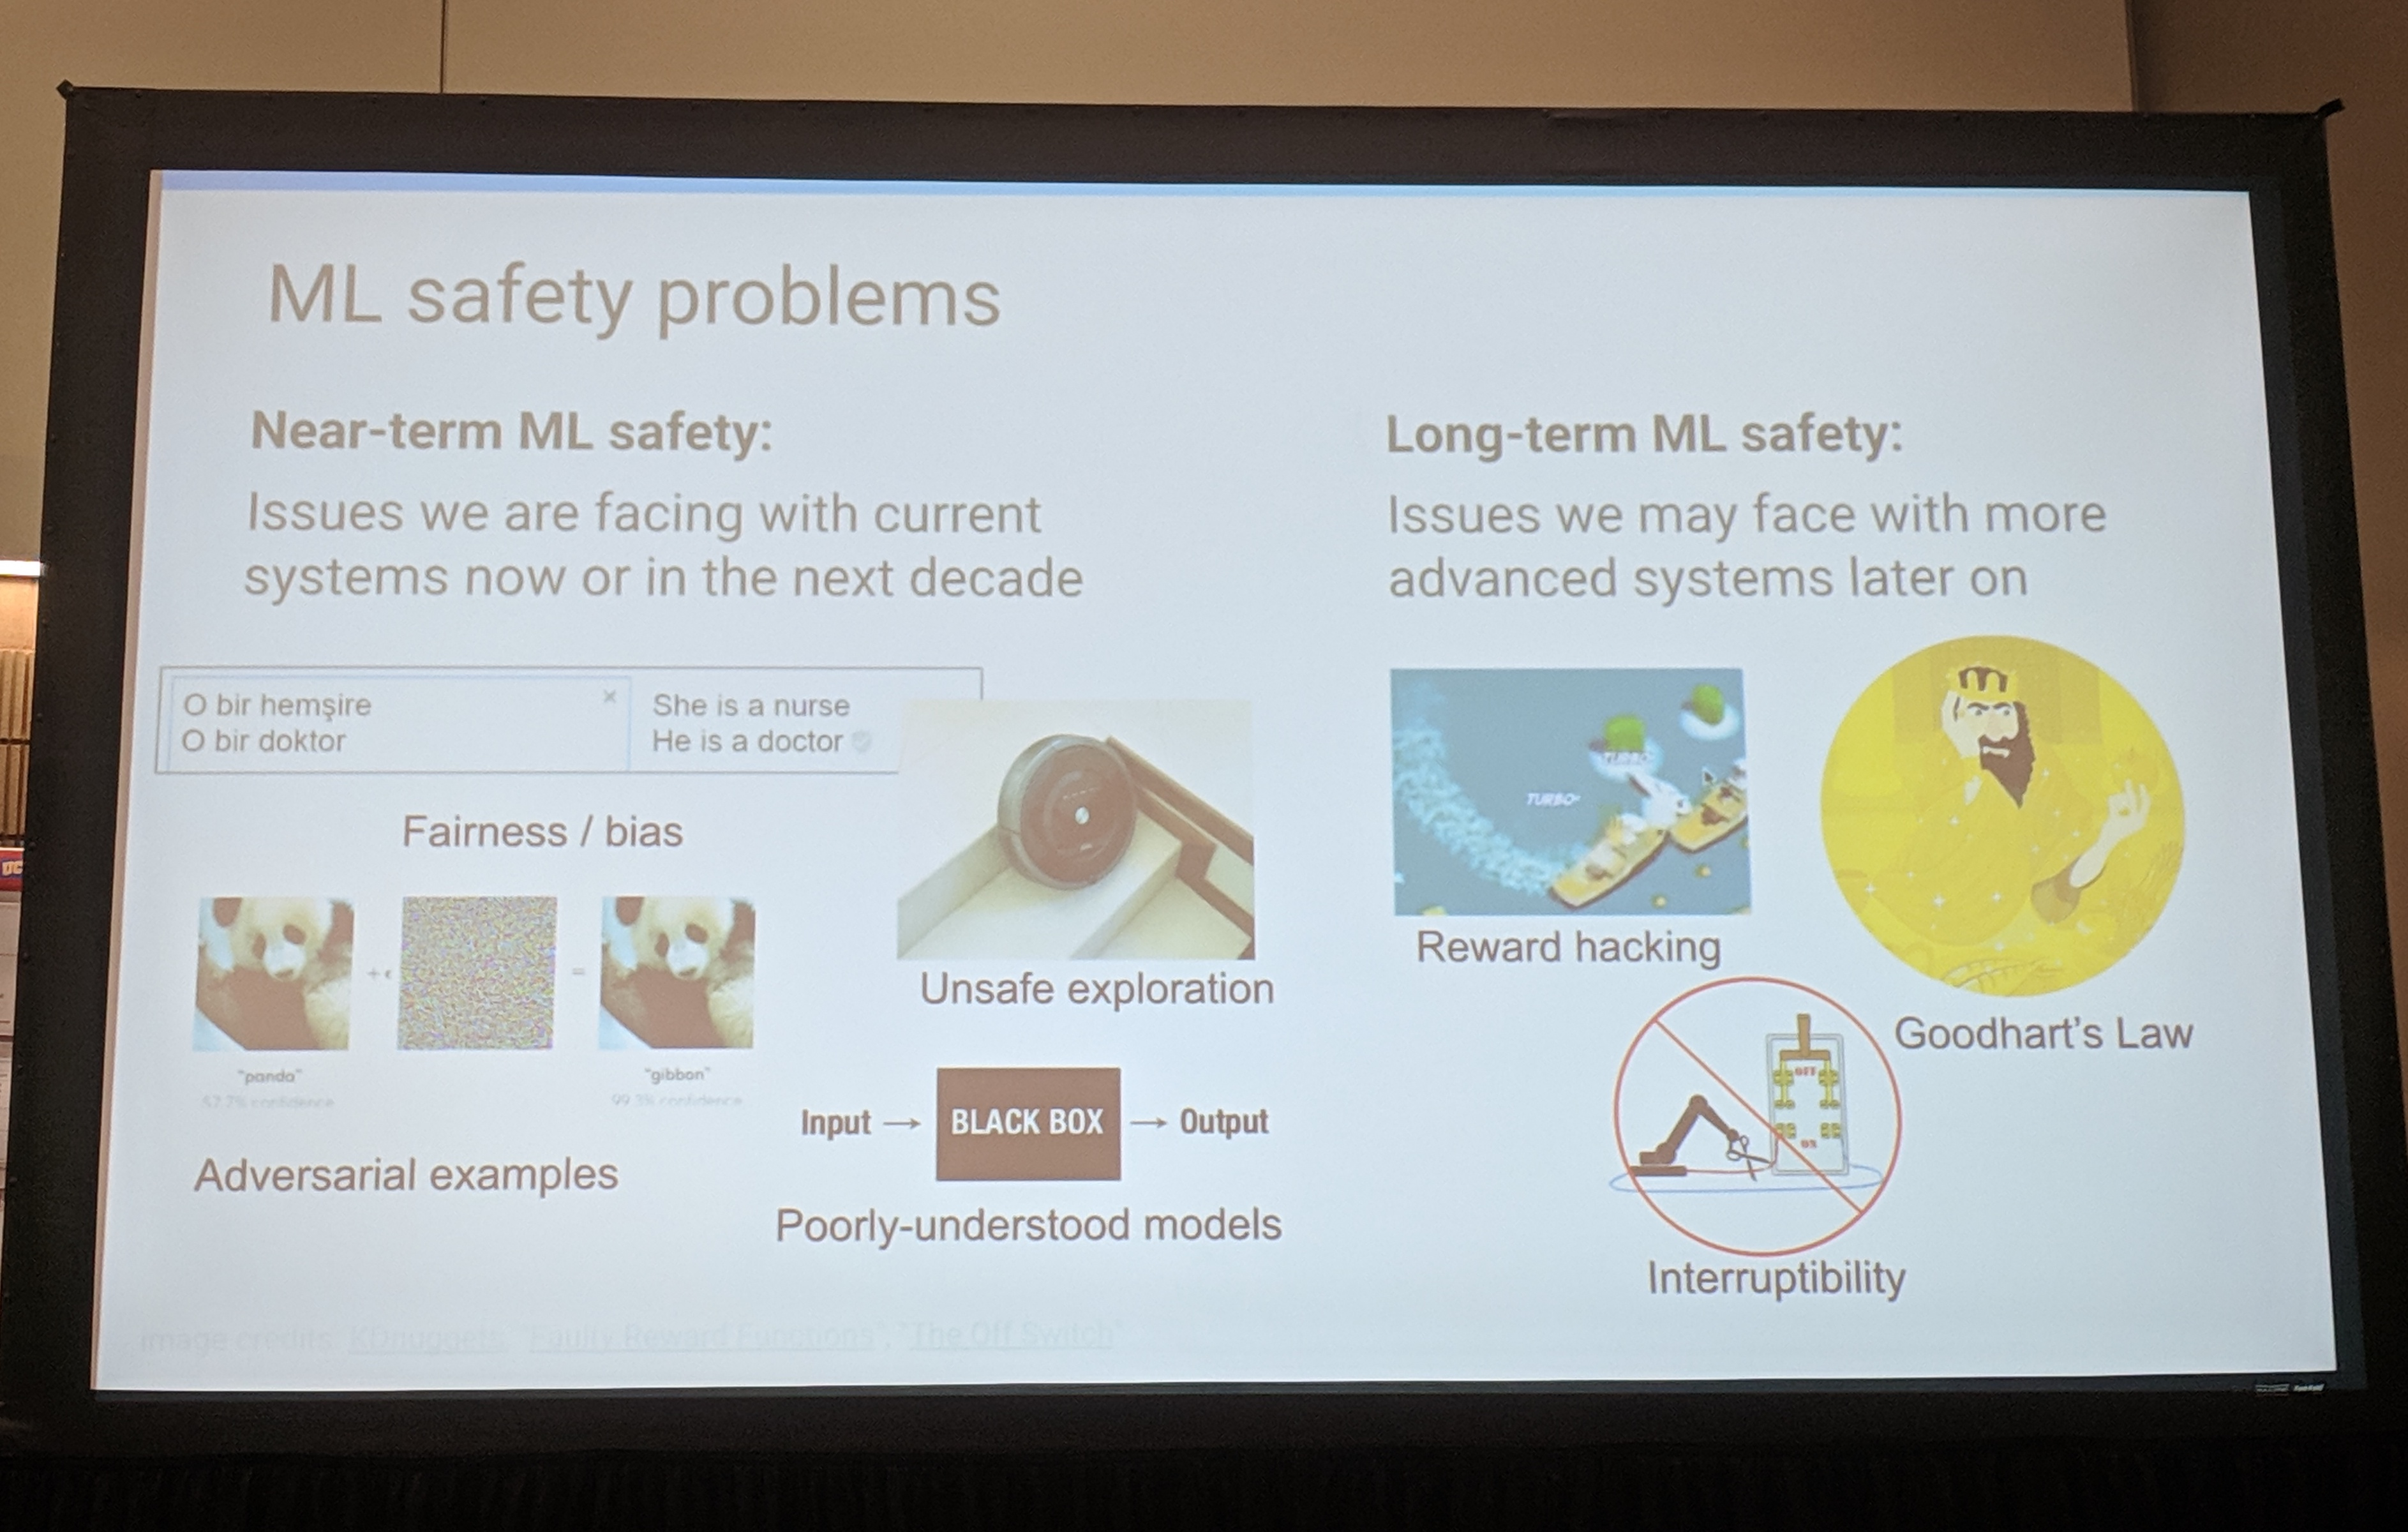 ml safety issues